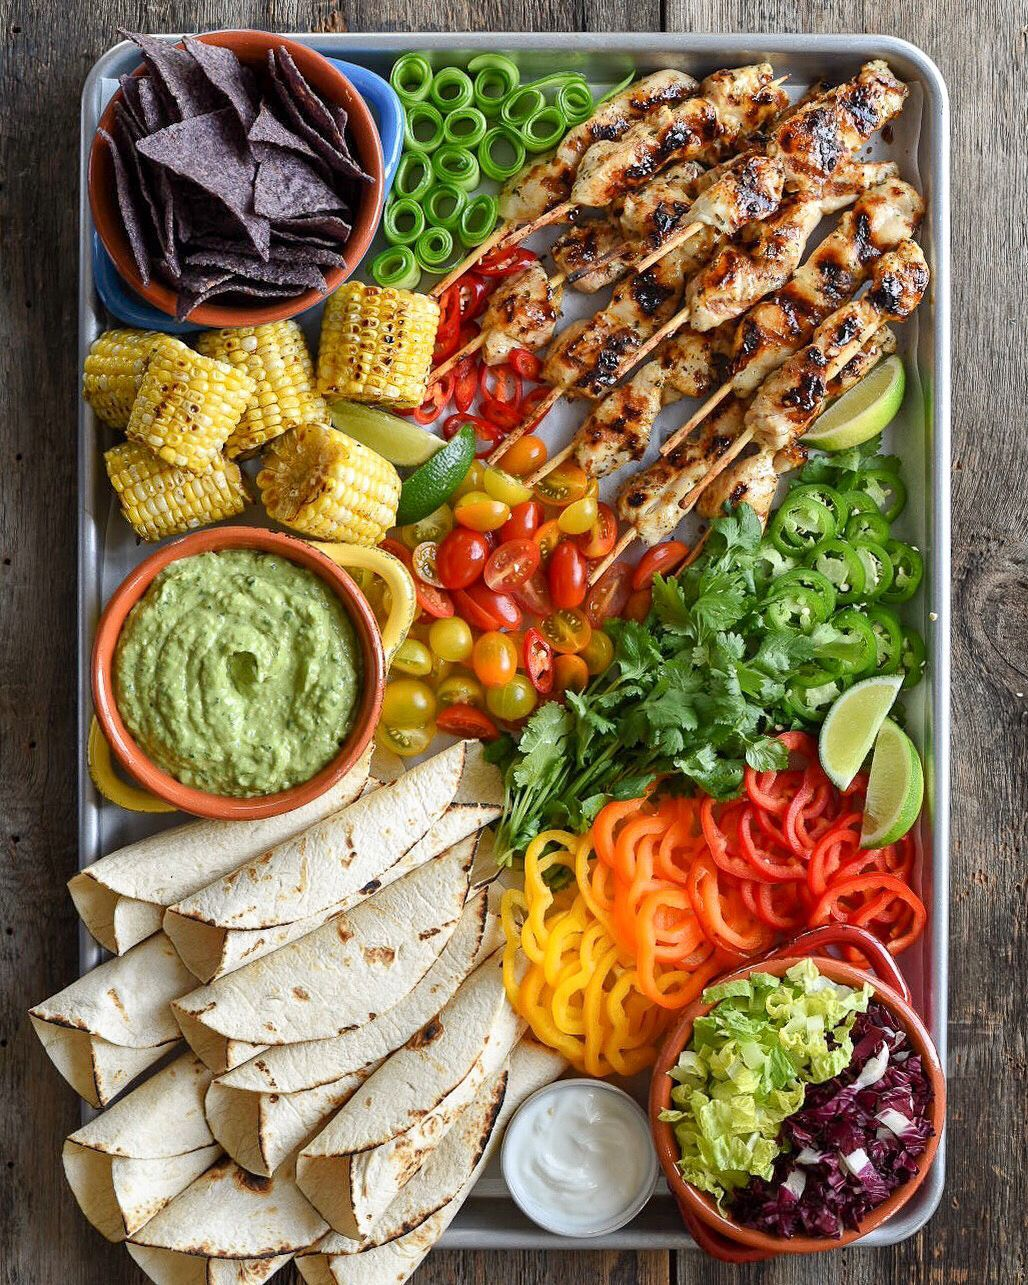 Grilled Chicken Tortillas with Spicy Guacamole by